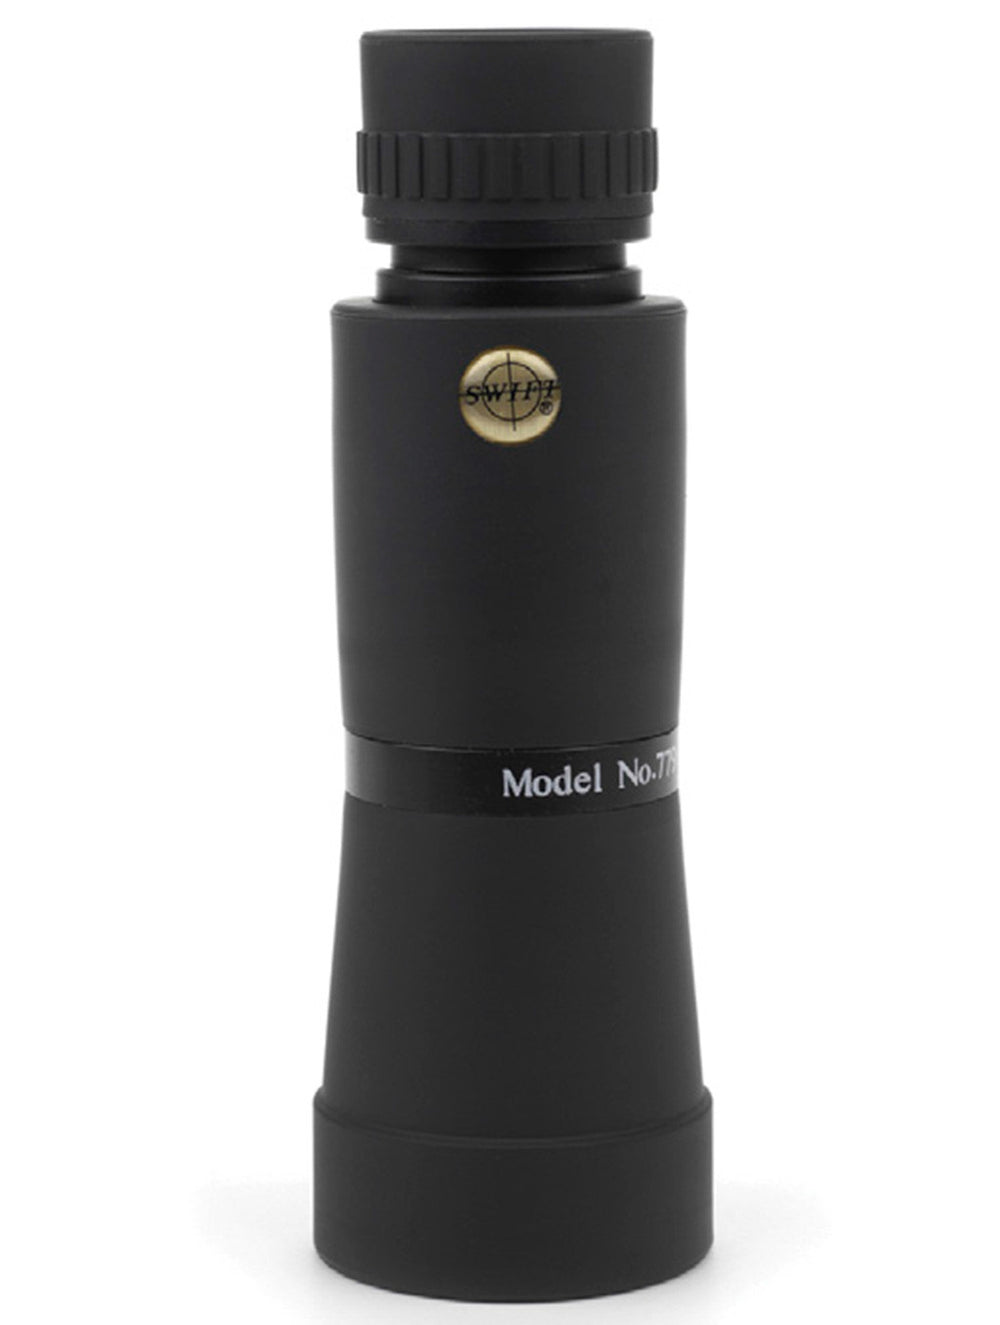 SWIFTReliant Birdfeeder Monocular 779  | 10x40 | 288 ft / 88m | 8.5 oz / 241g